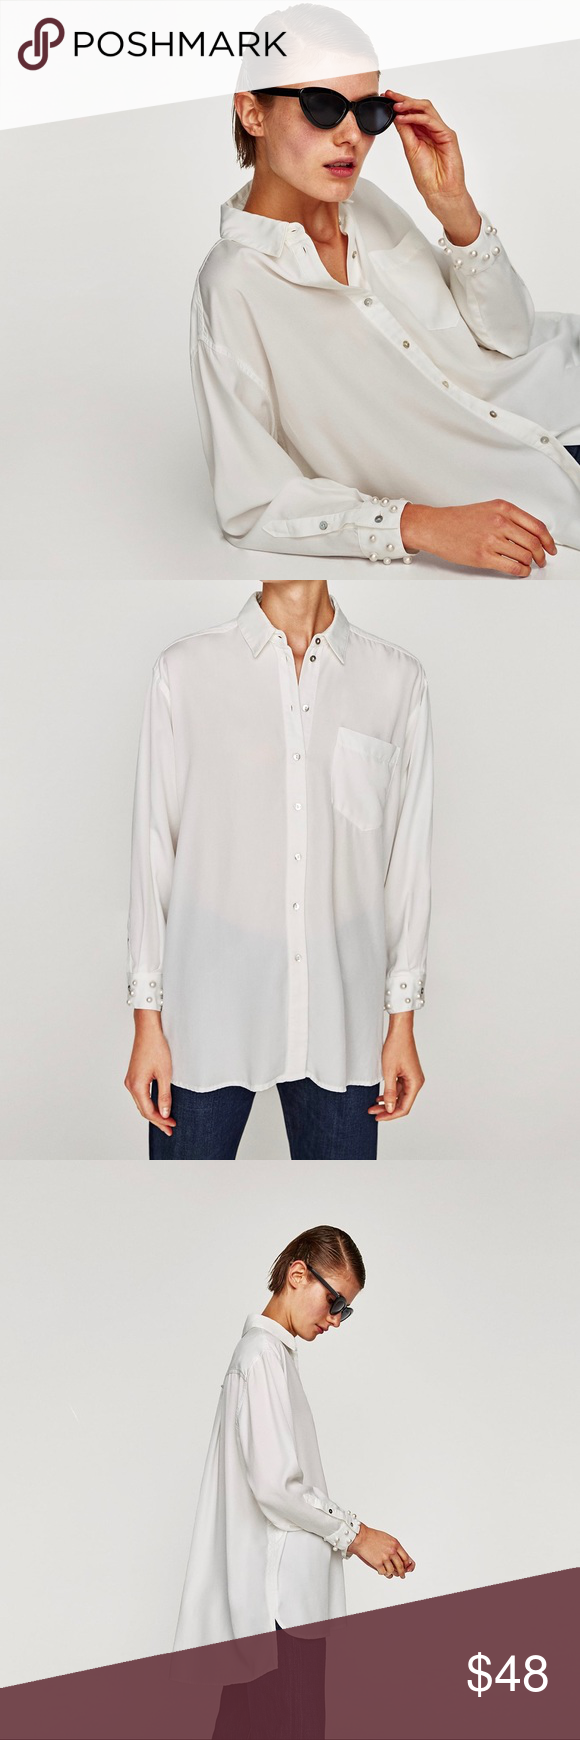 96e5cdaf6dd5b Zara White Lyocell Shirt with Pearl Cuffs •White button down shirt with  faux pearls on the cuffs. Tencel Lyocell. •Size Large